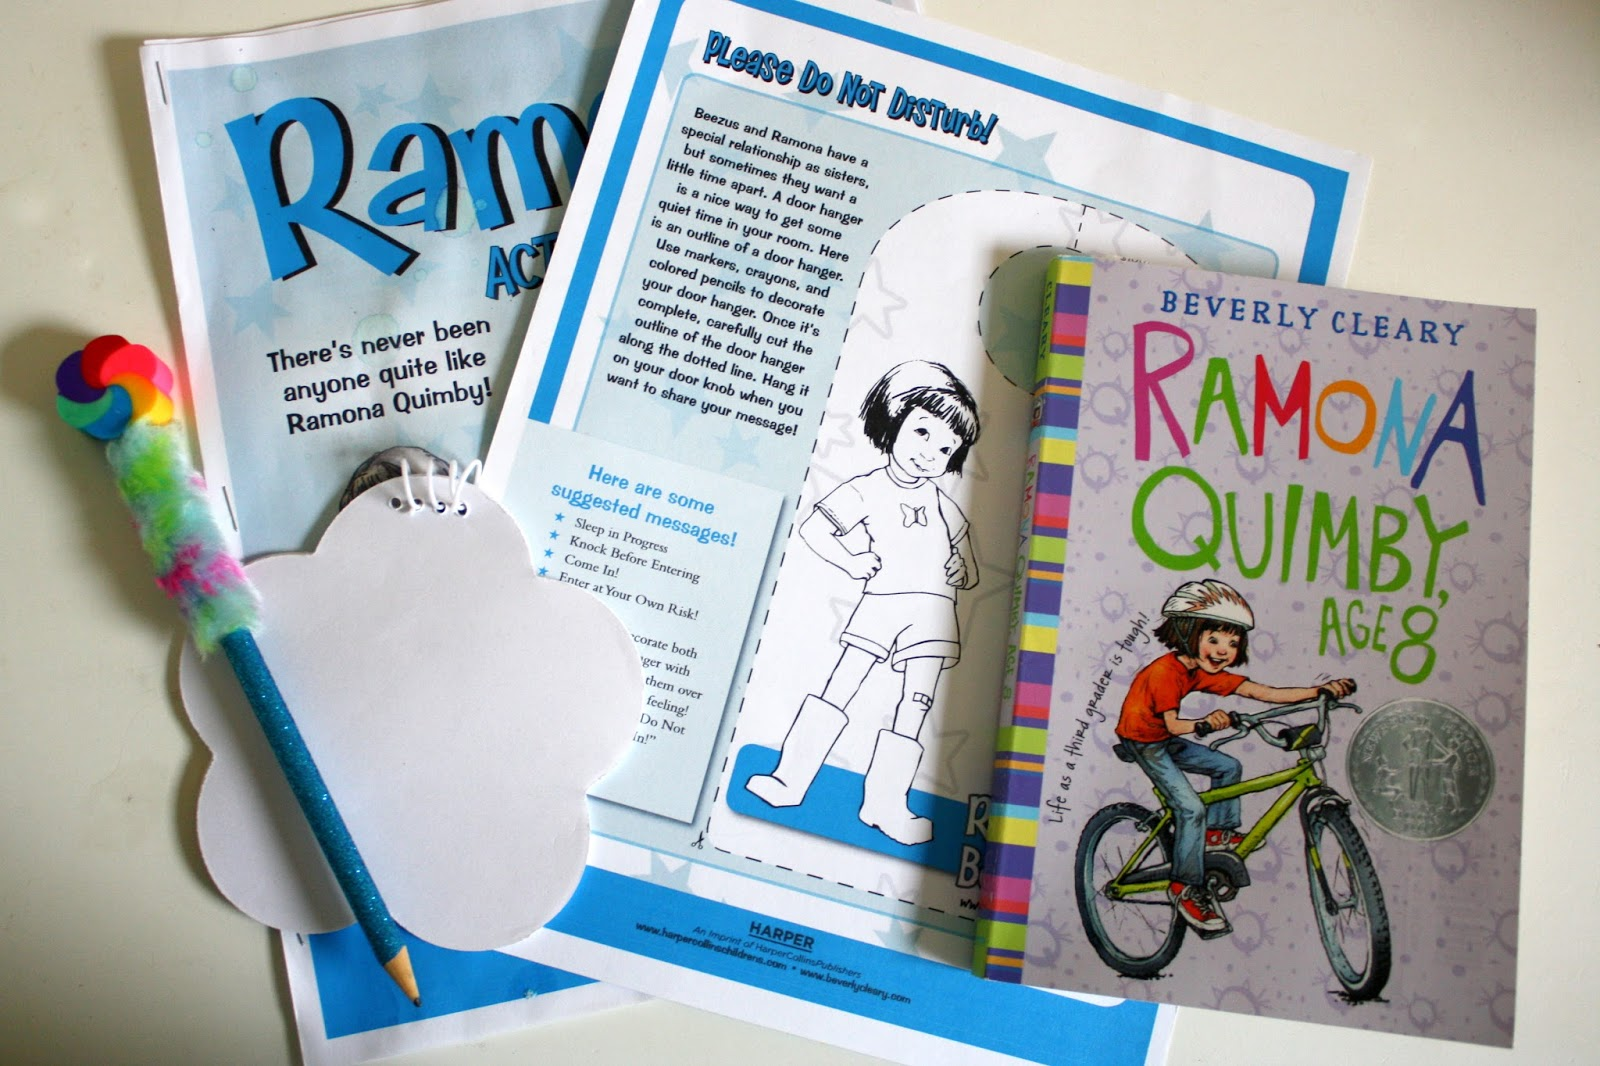 Ramona Quimby Age 8 Activity Ideas